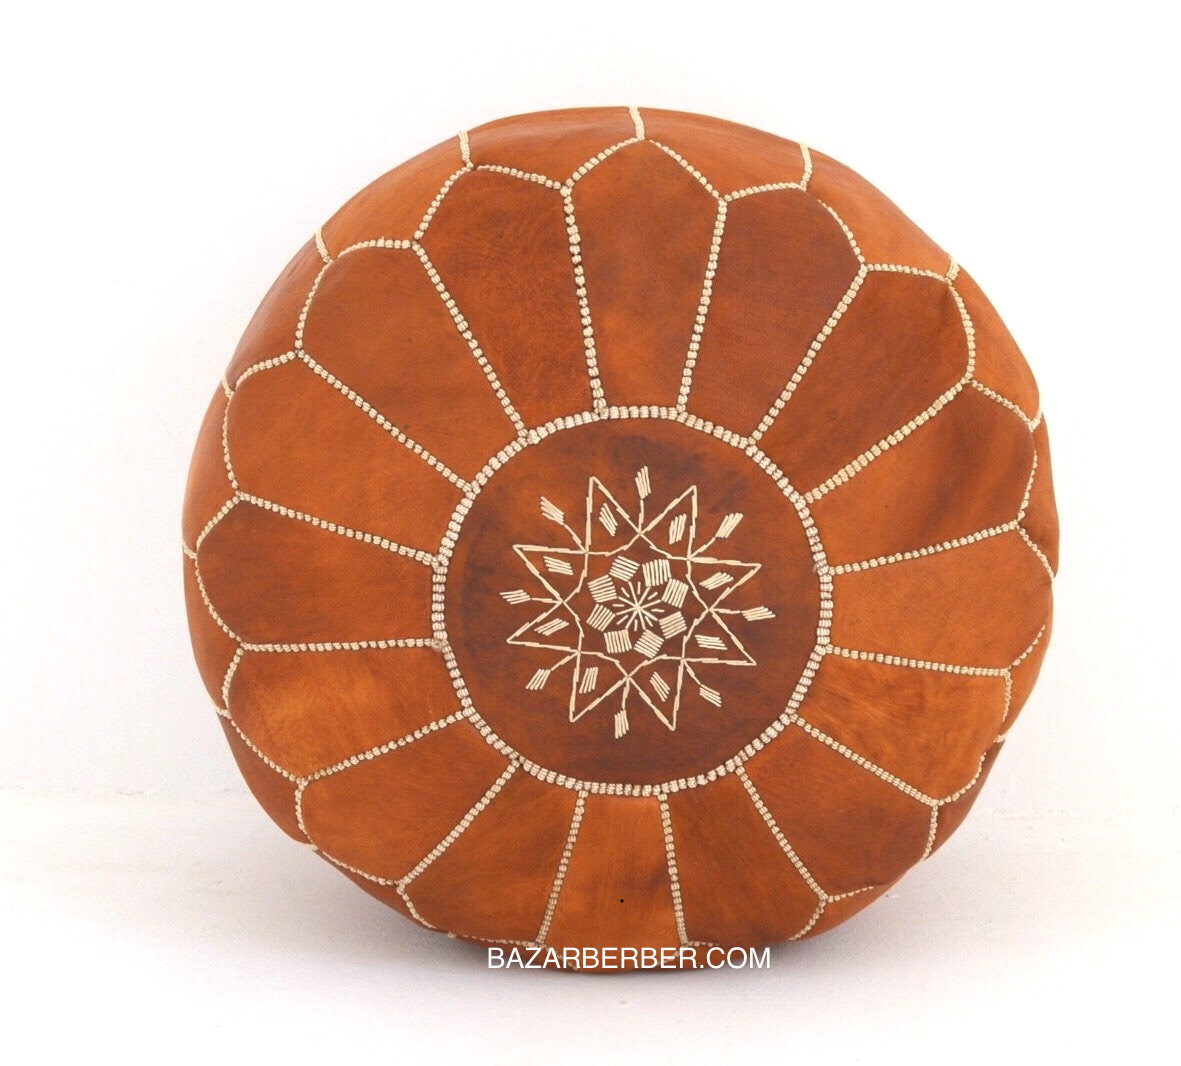 Pouf Xl Set Of 2 Xl Moroccan Poufs Designer Luxury Tan Leather Pouf Hand Stitched And Embroidered